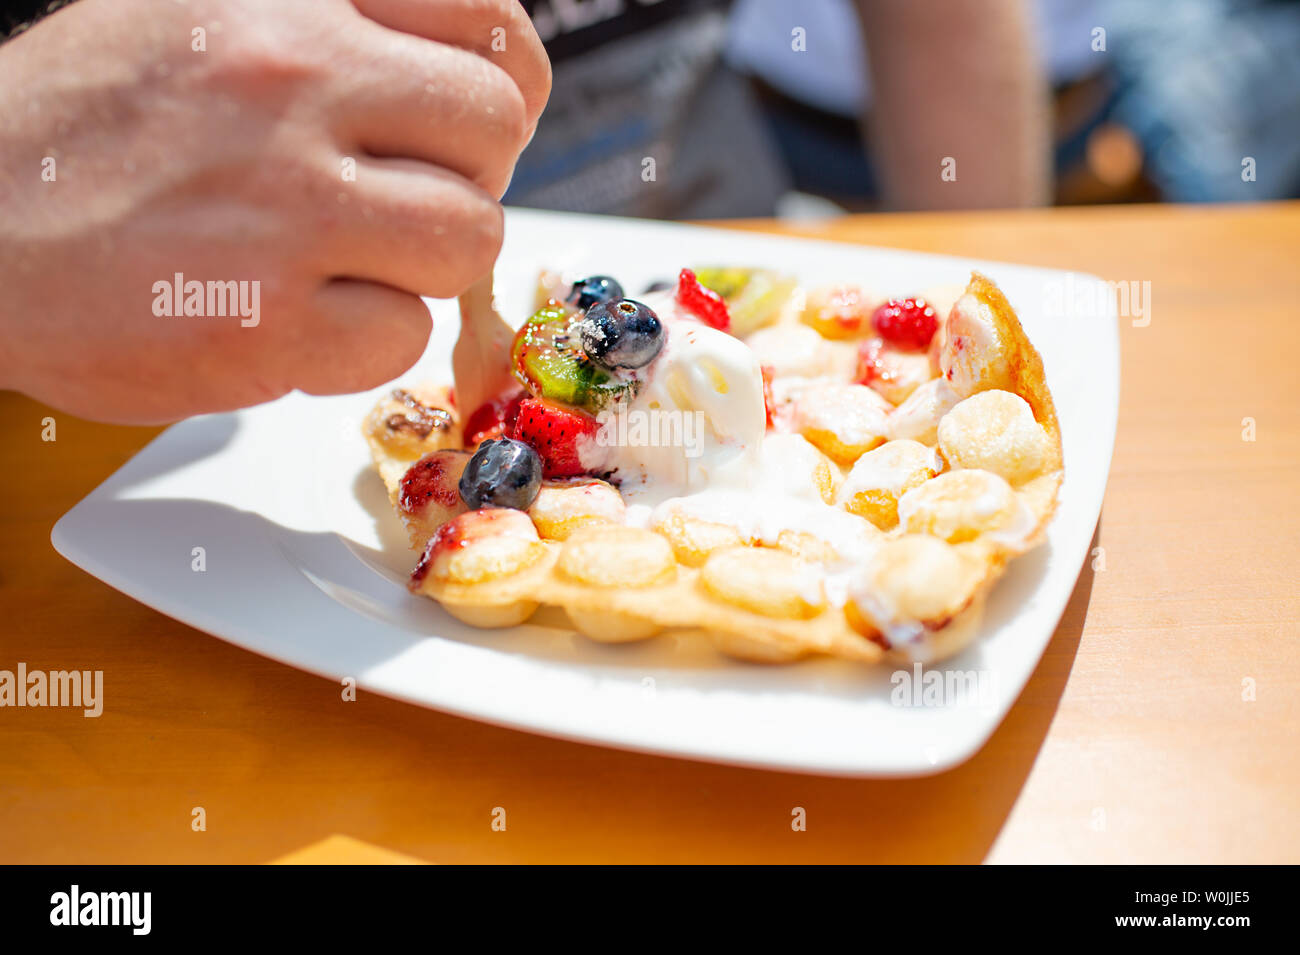 Trend pastry Bubble Waffles (Egg Waffles, Hong Kong cakes) with ice cream and fresh fruits. Strawberries, kiwi, bilberries, strawberry sauce on white - Stock Image